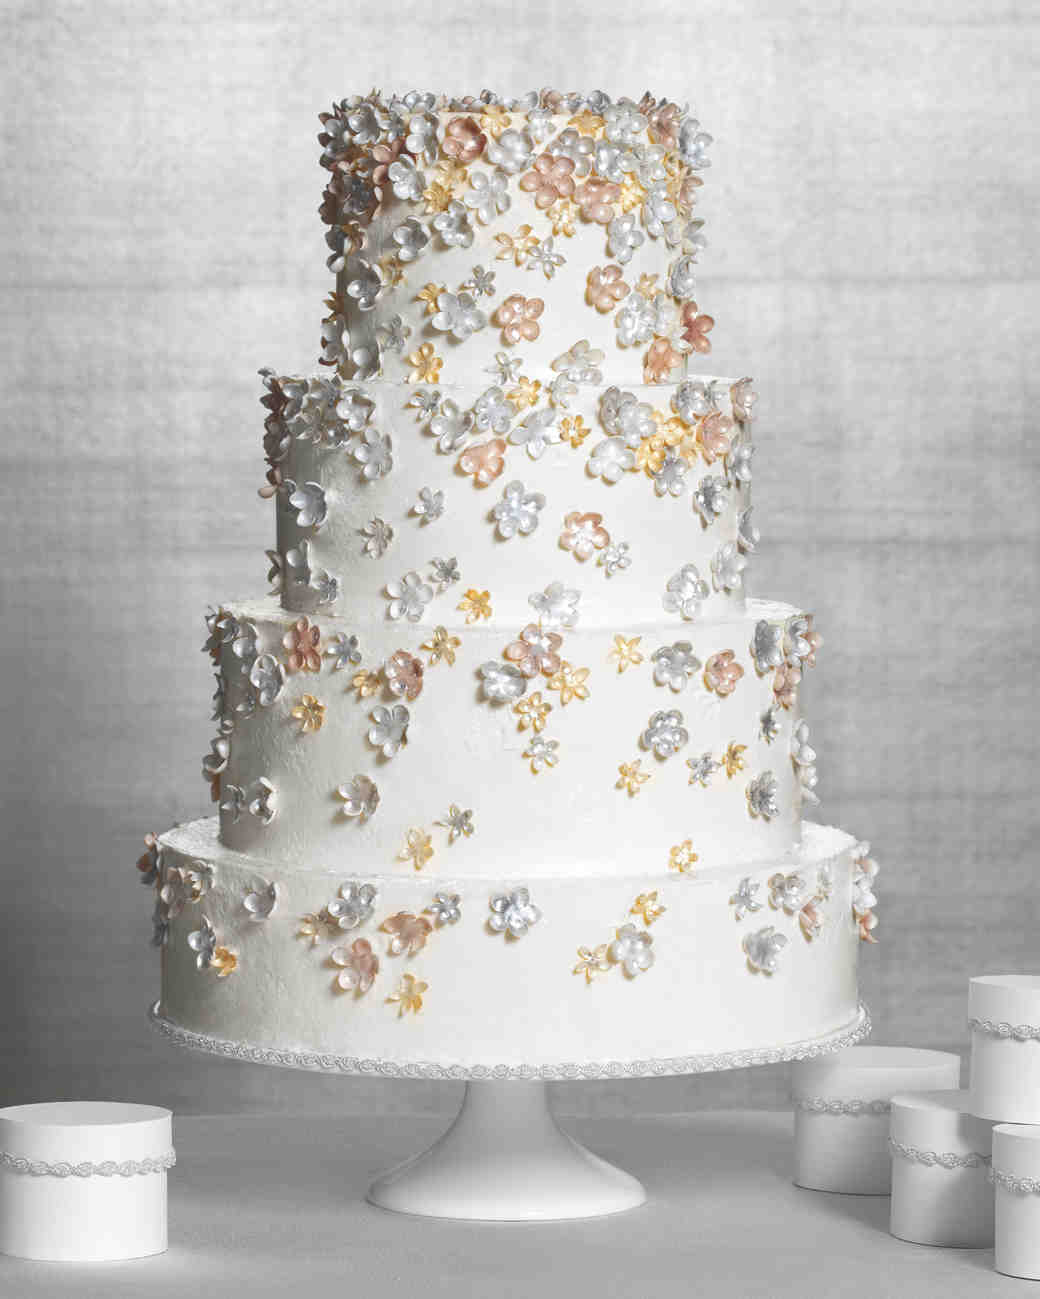 Dazzling and Delicious: How to Add Sparkle to Your Cake | Martha ...